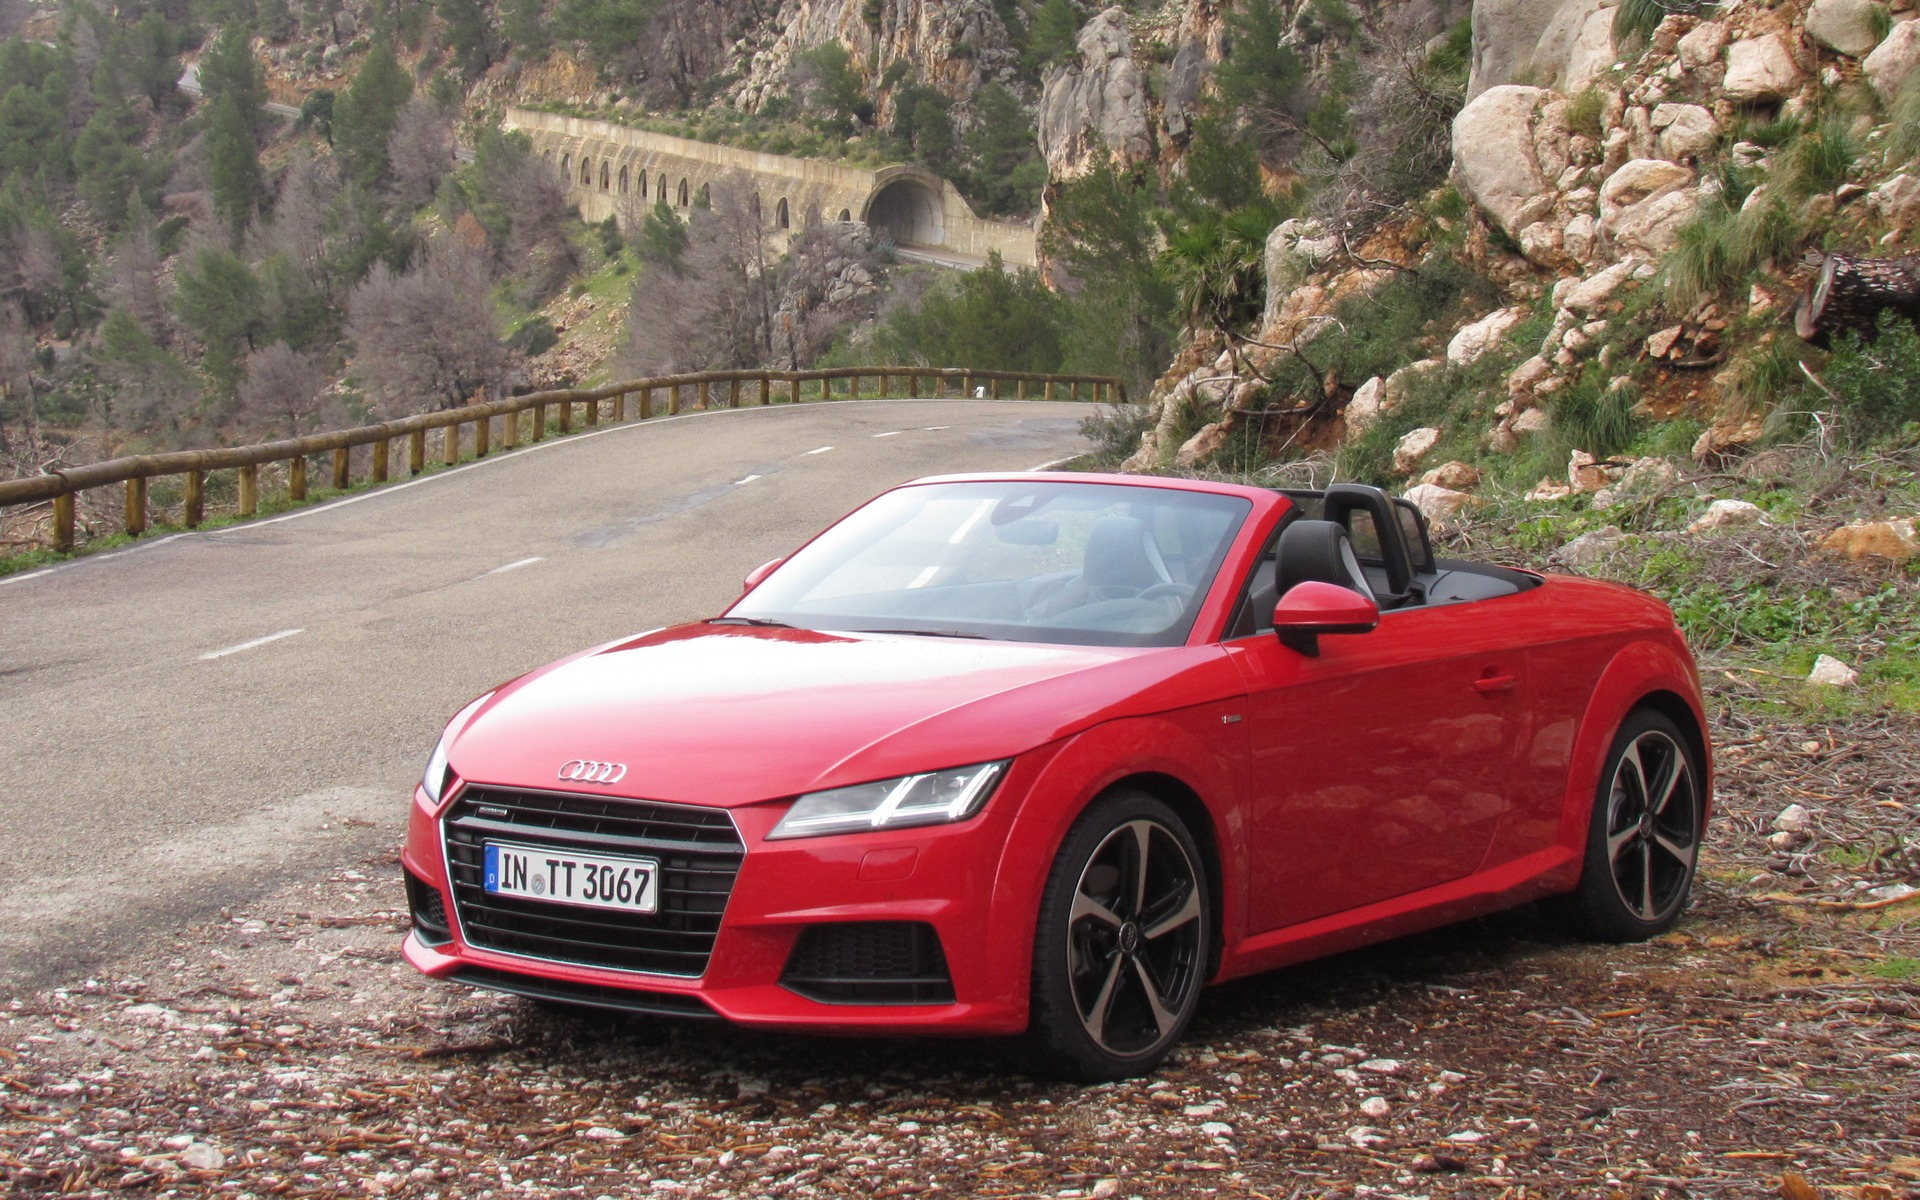 audi tt et tts roadster 2016 deux cabriolets s duisants. Black Bedroom Furniture Sets. Home Design Ideas